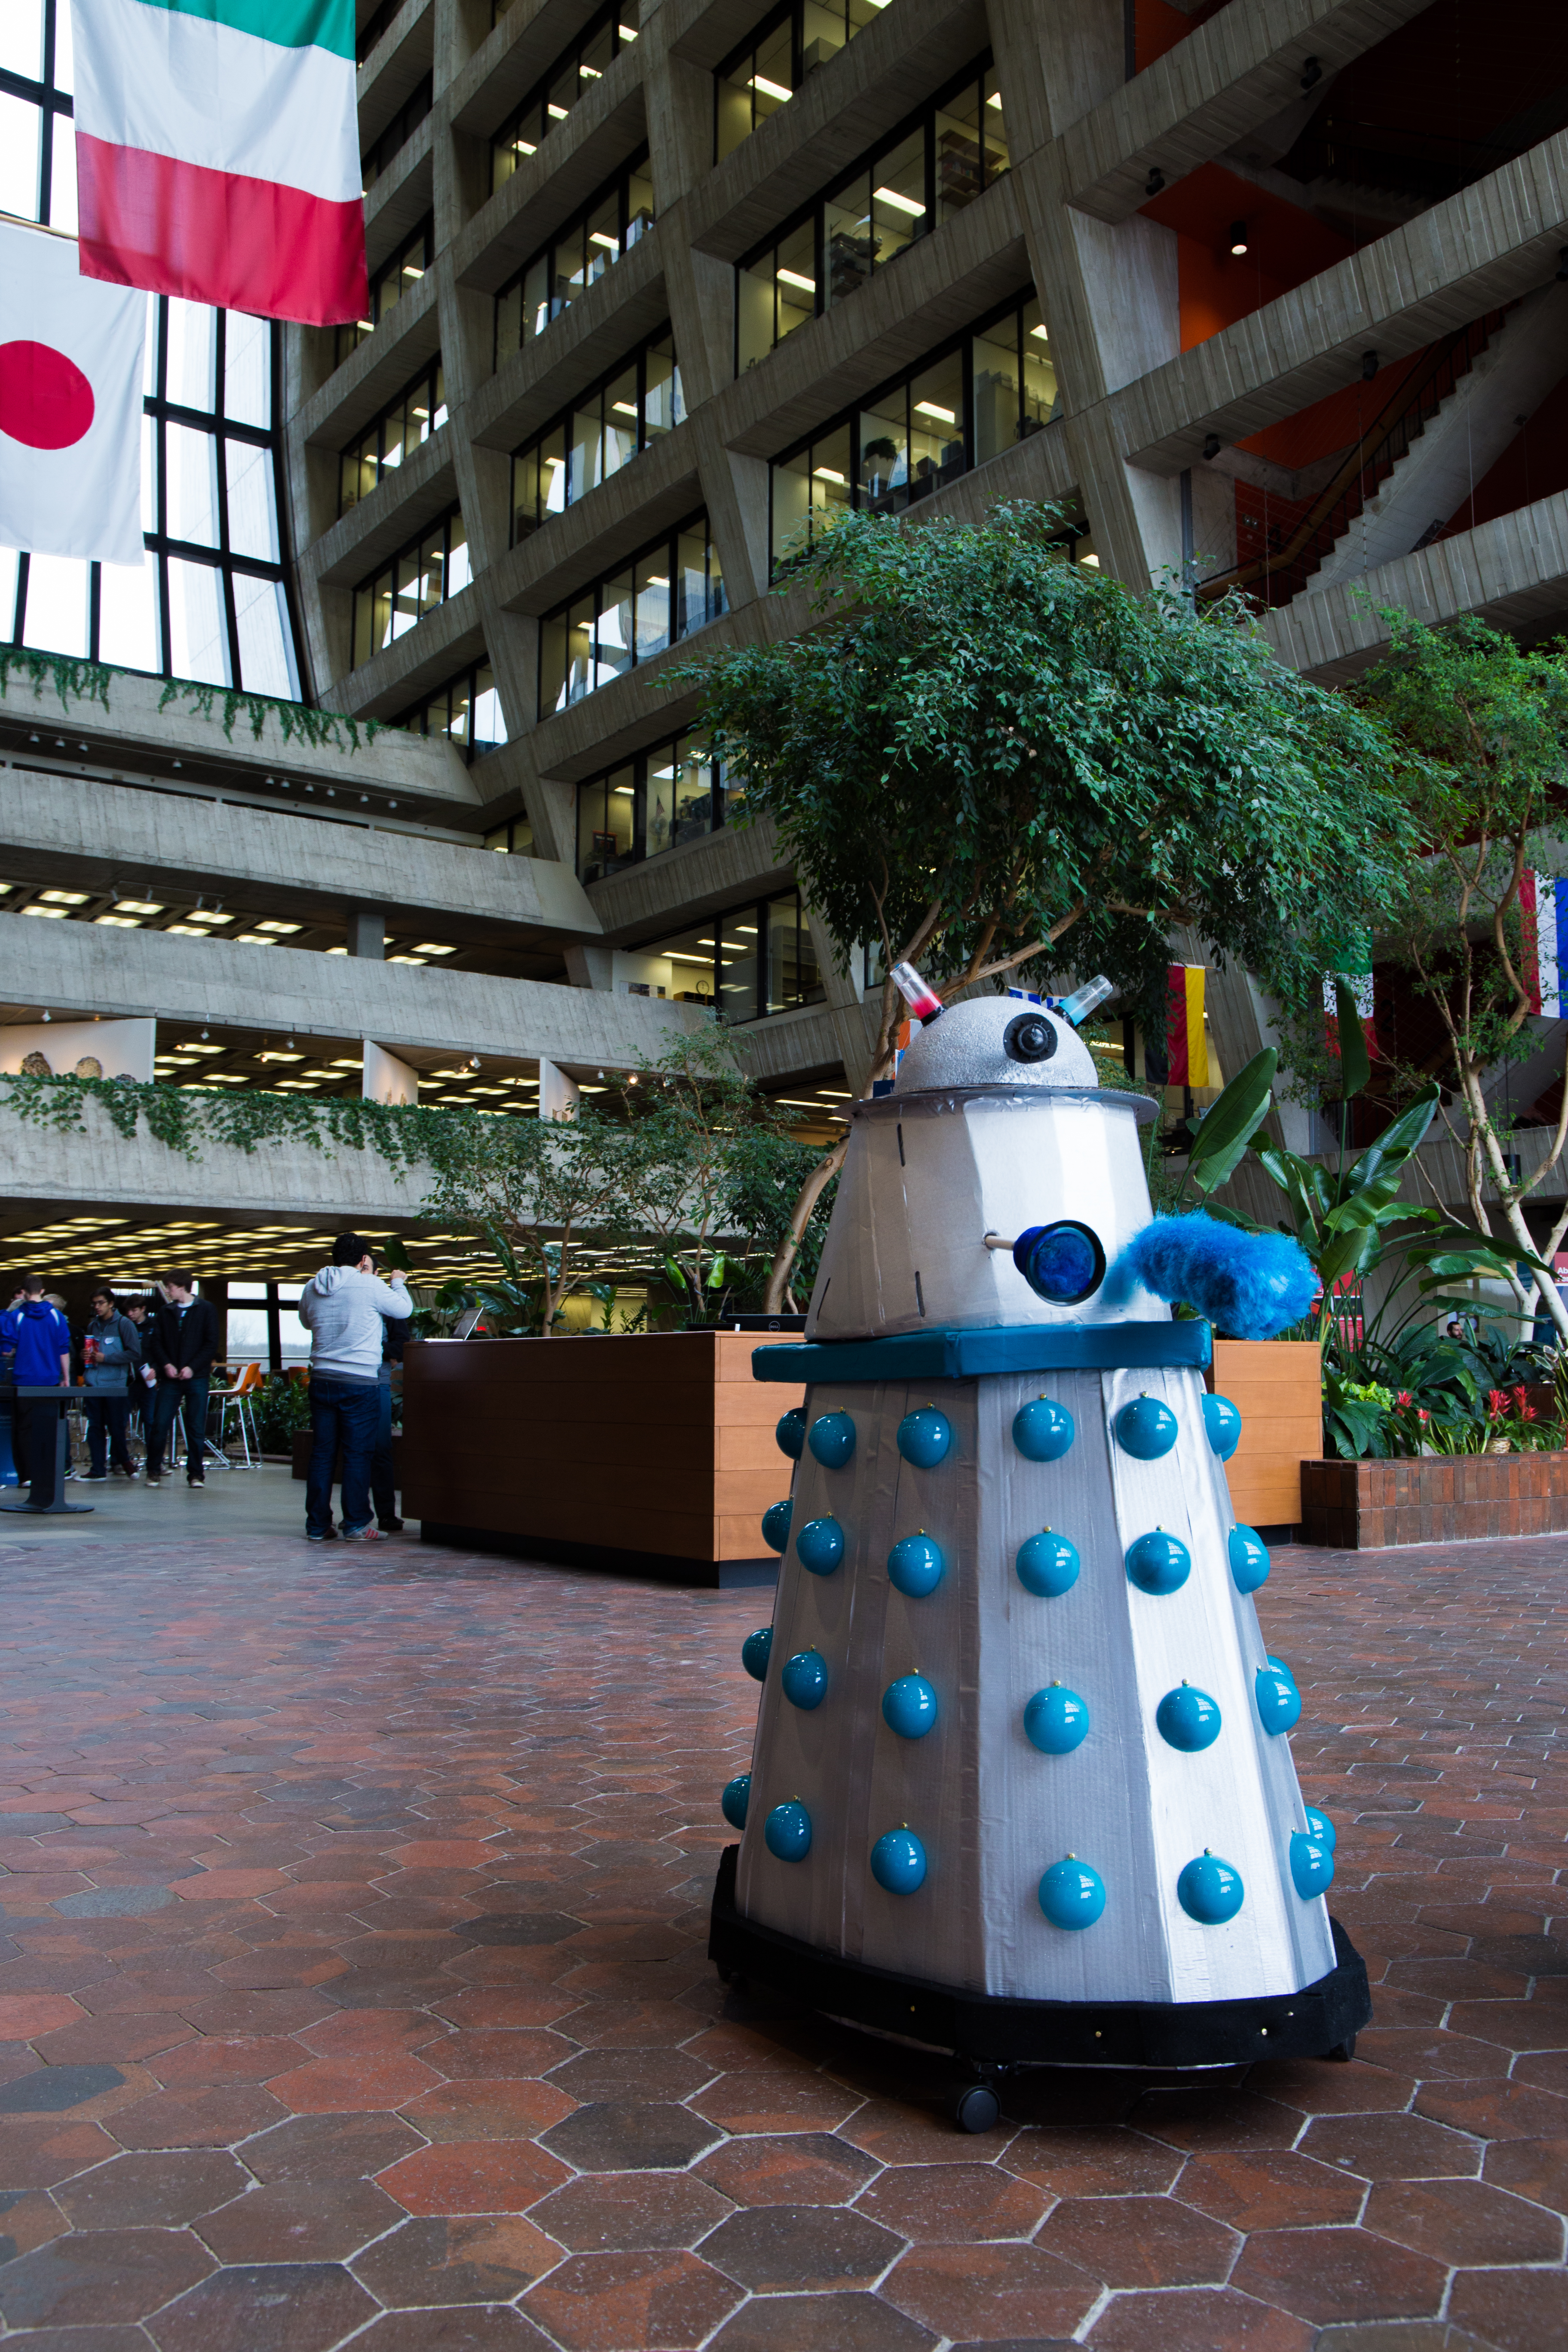 Daleks visited Fermilab to exterminate. Good luck doing that in broad daylight. Ten-year-old Elise Aponte, daughter of Evelyn Aponte, created this Dalek model. Photo: Rashmi Shivni, OC